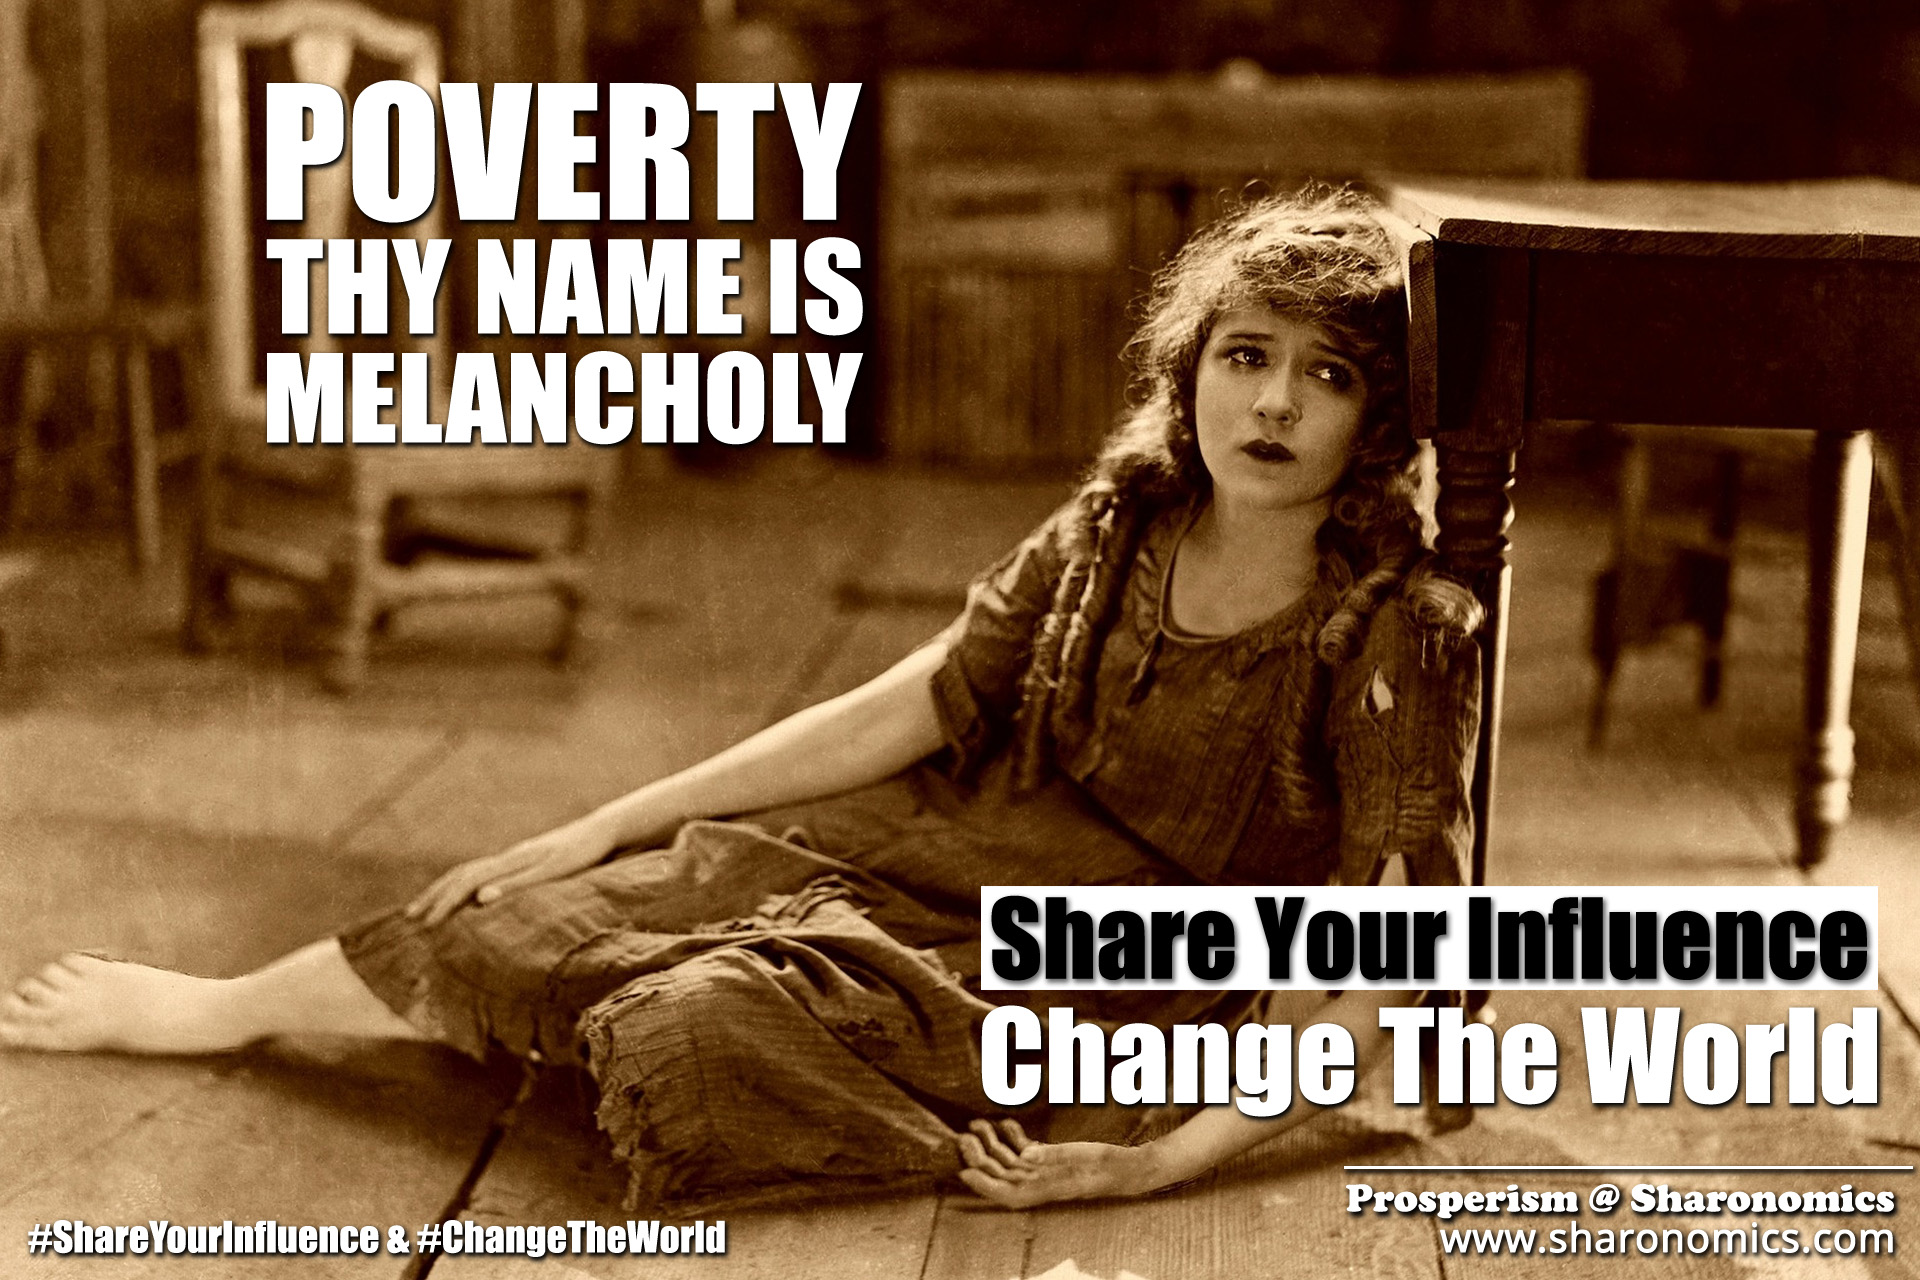 sharonomics, algoshare, prosperism, autonio, poverty, charity, #shareyourinfluence, #changetheworld, poverty, name, melancholy, thy, share, influence, change, world